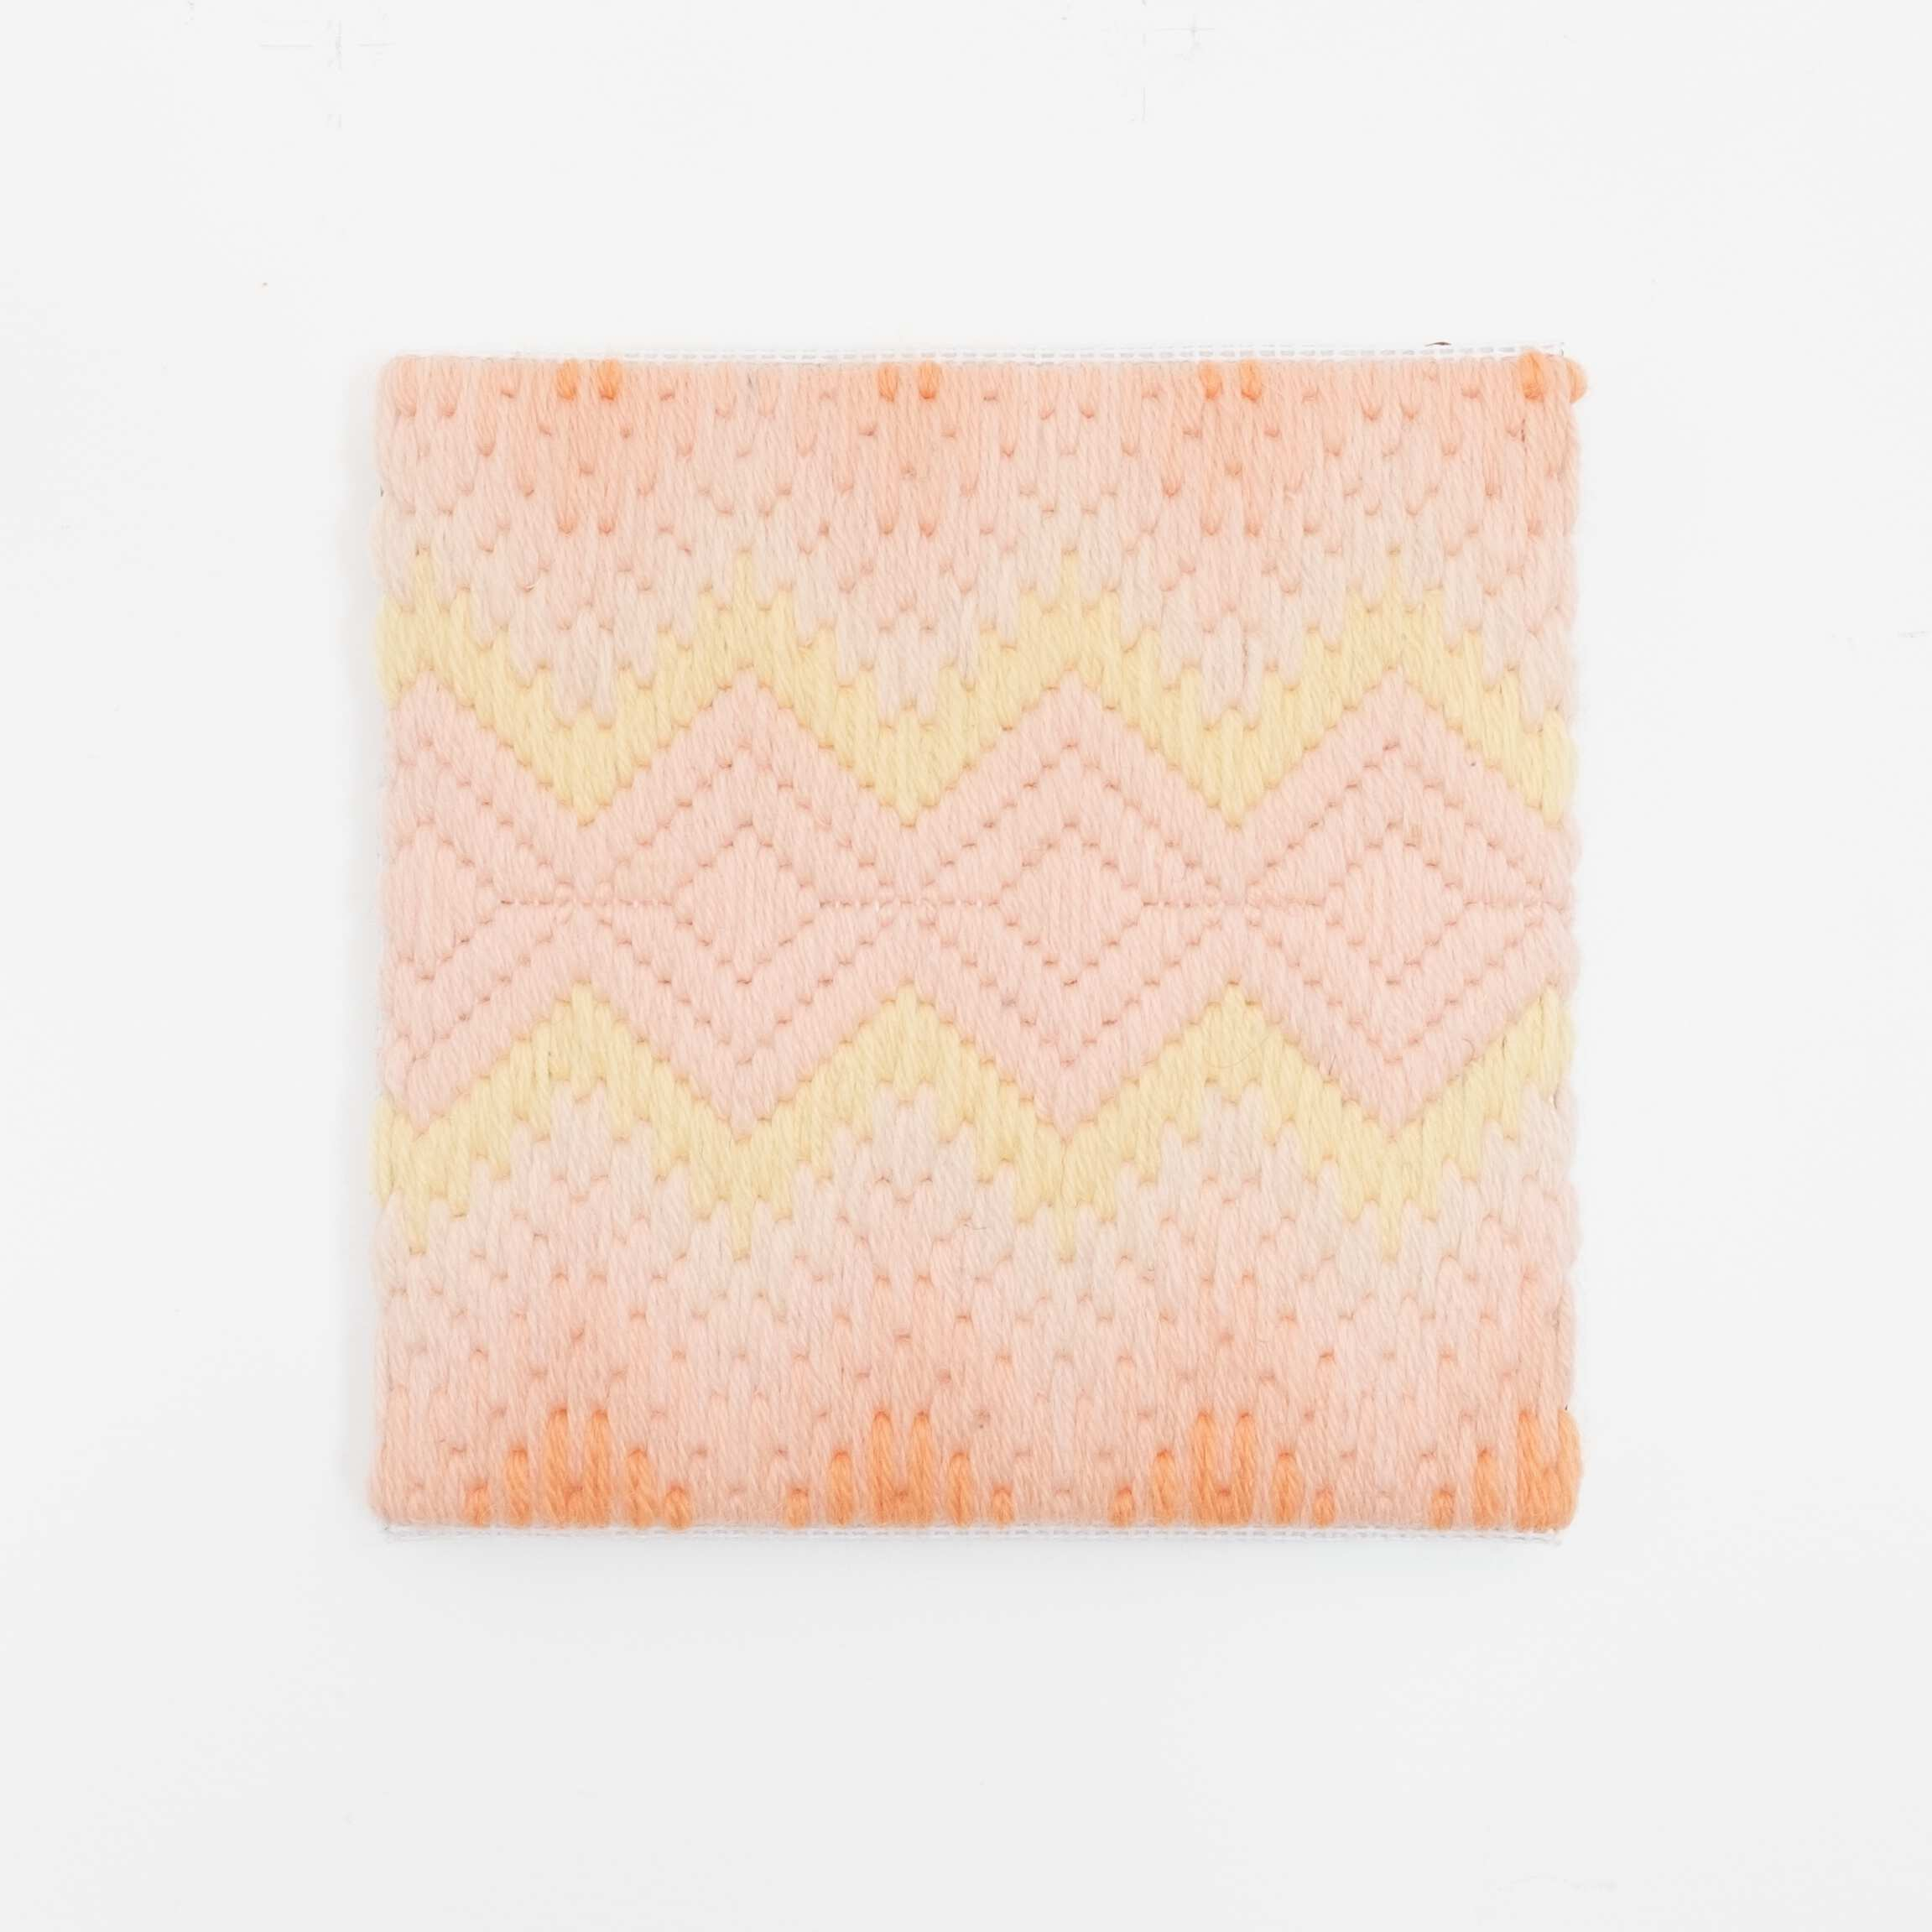 Depression Era [cut glass, peach], Hand-embroidered wool on canvas over panel, 2020